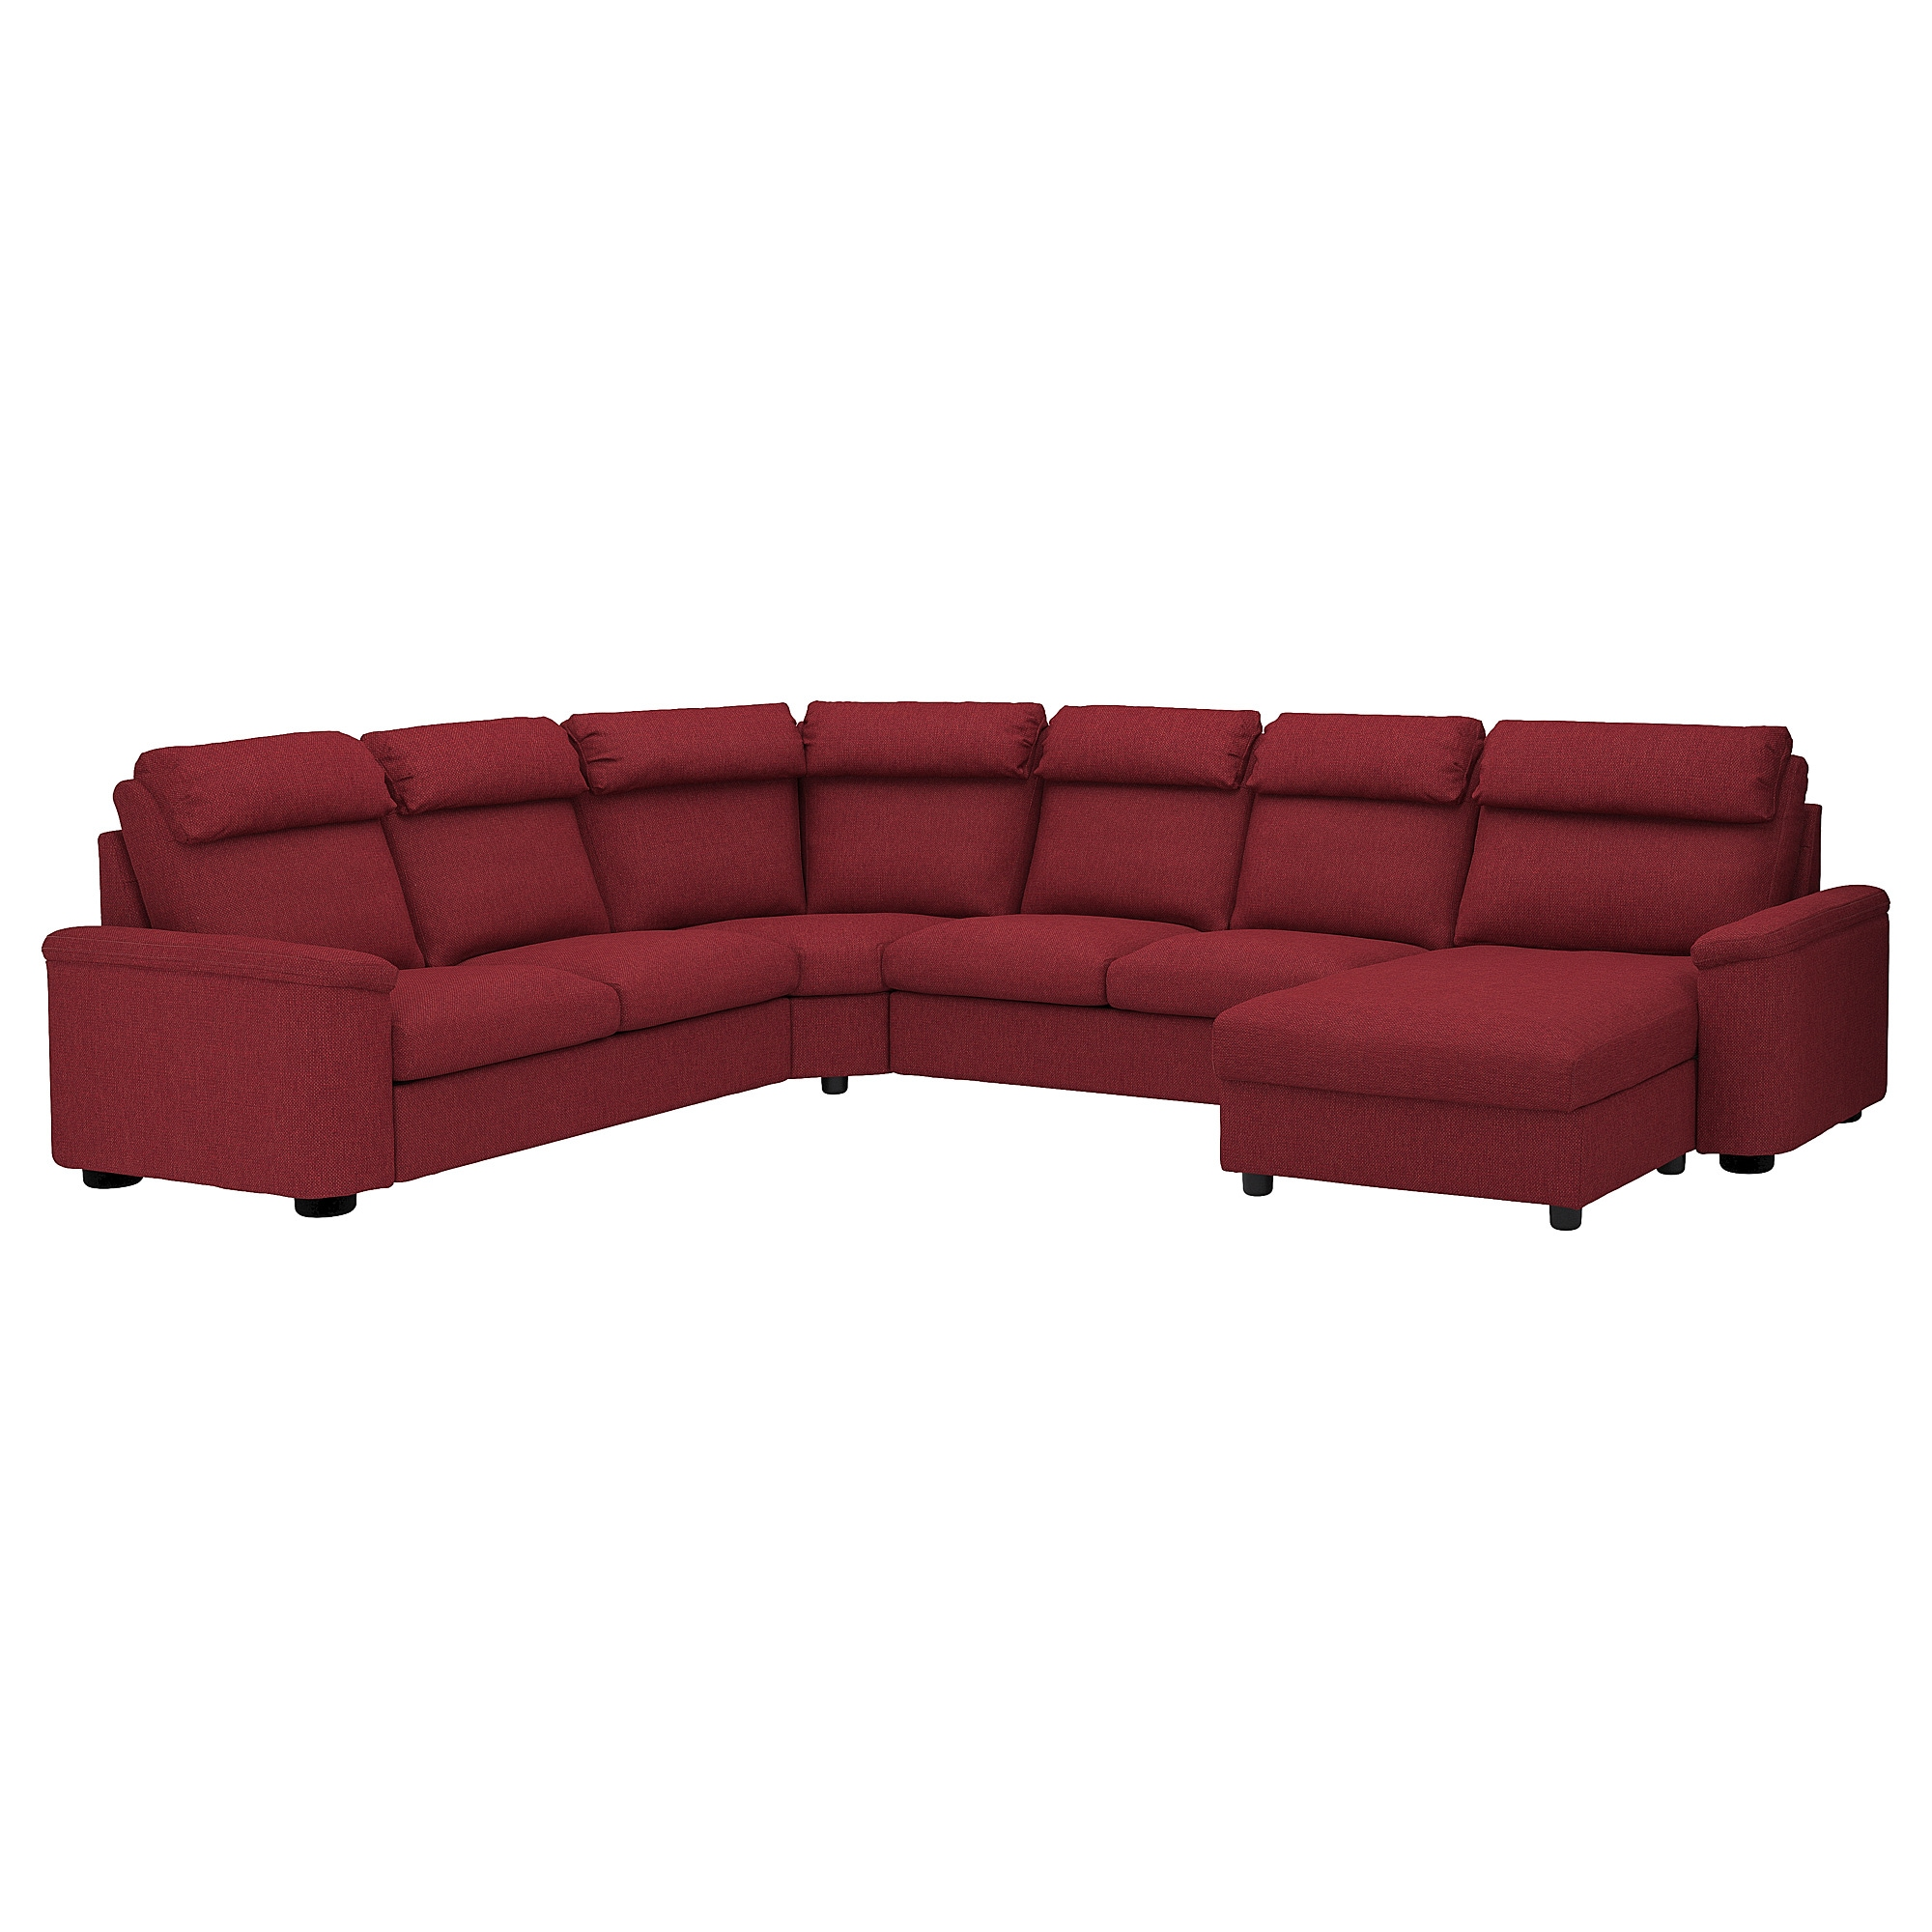 Corner sofa-bed, 6-seat LIDHULT with chaise longue, Lejde red/brown  red-brown